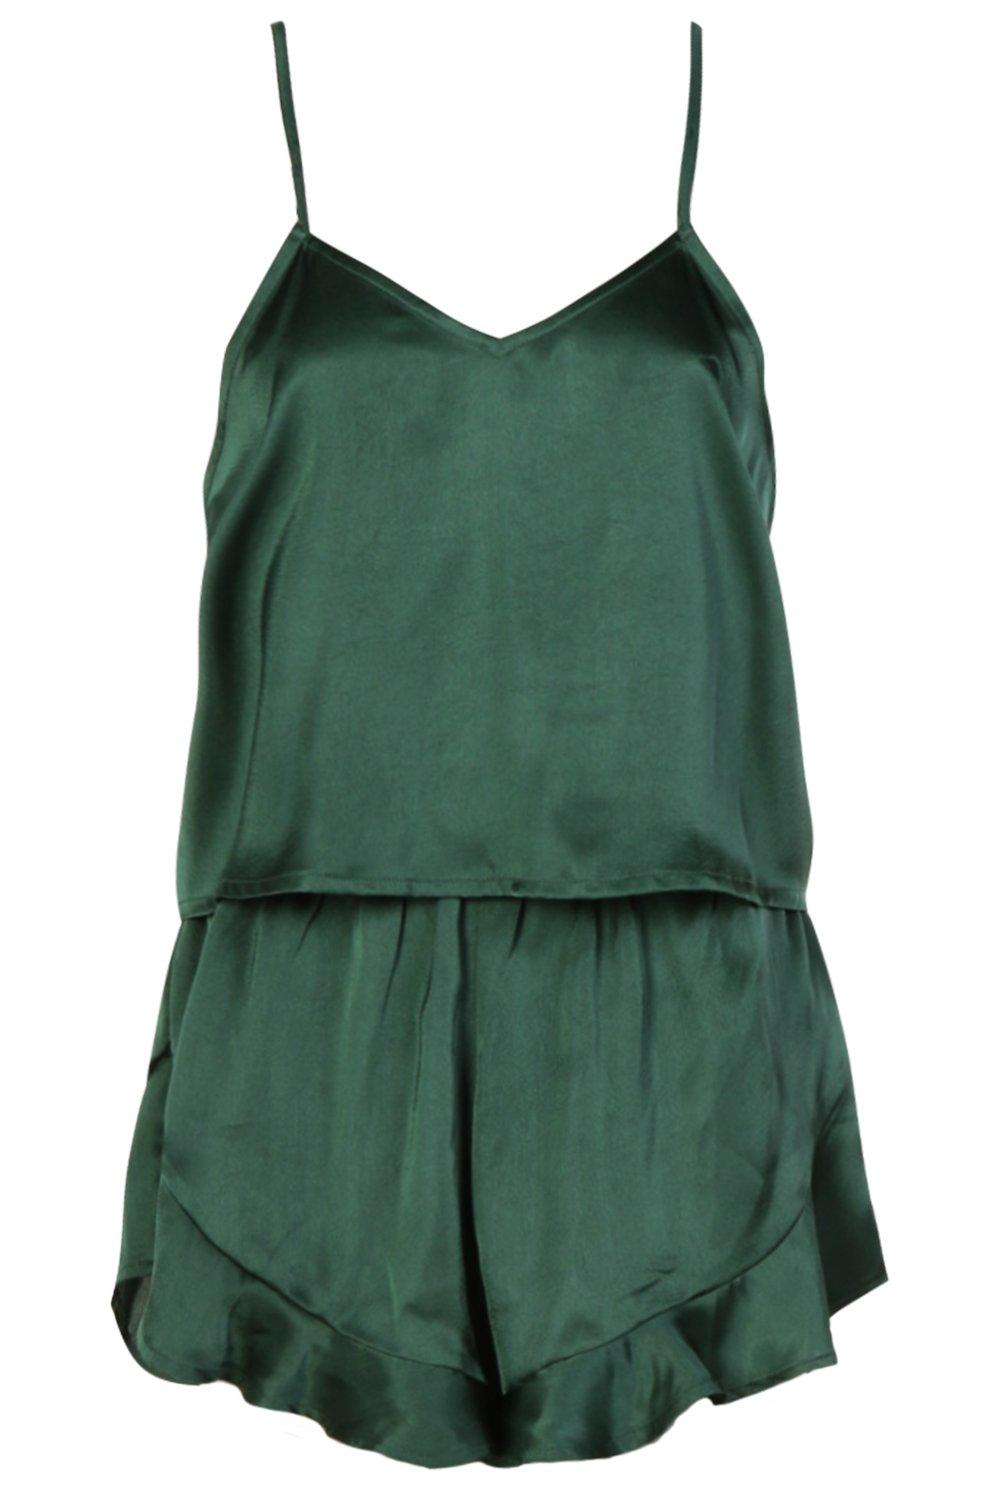 amp; Short Vest Set dark green Satin Of5qT4n